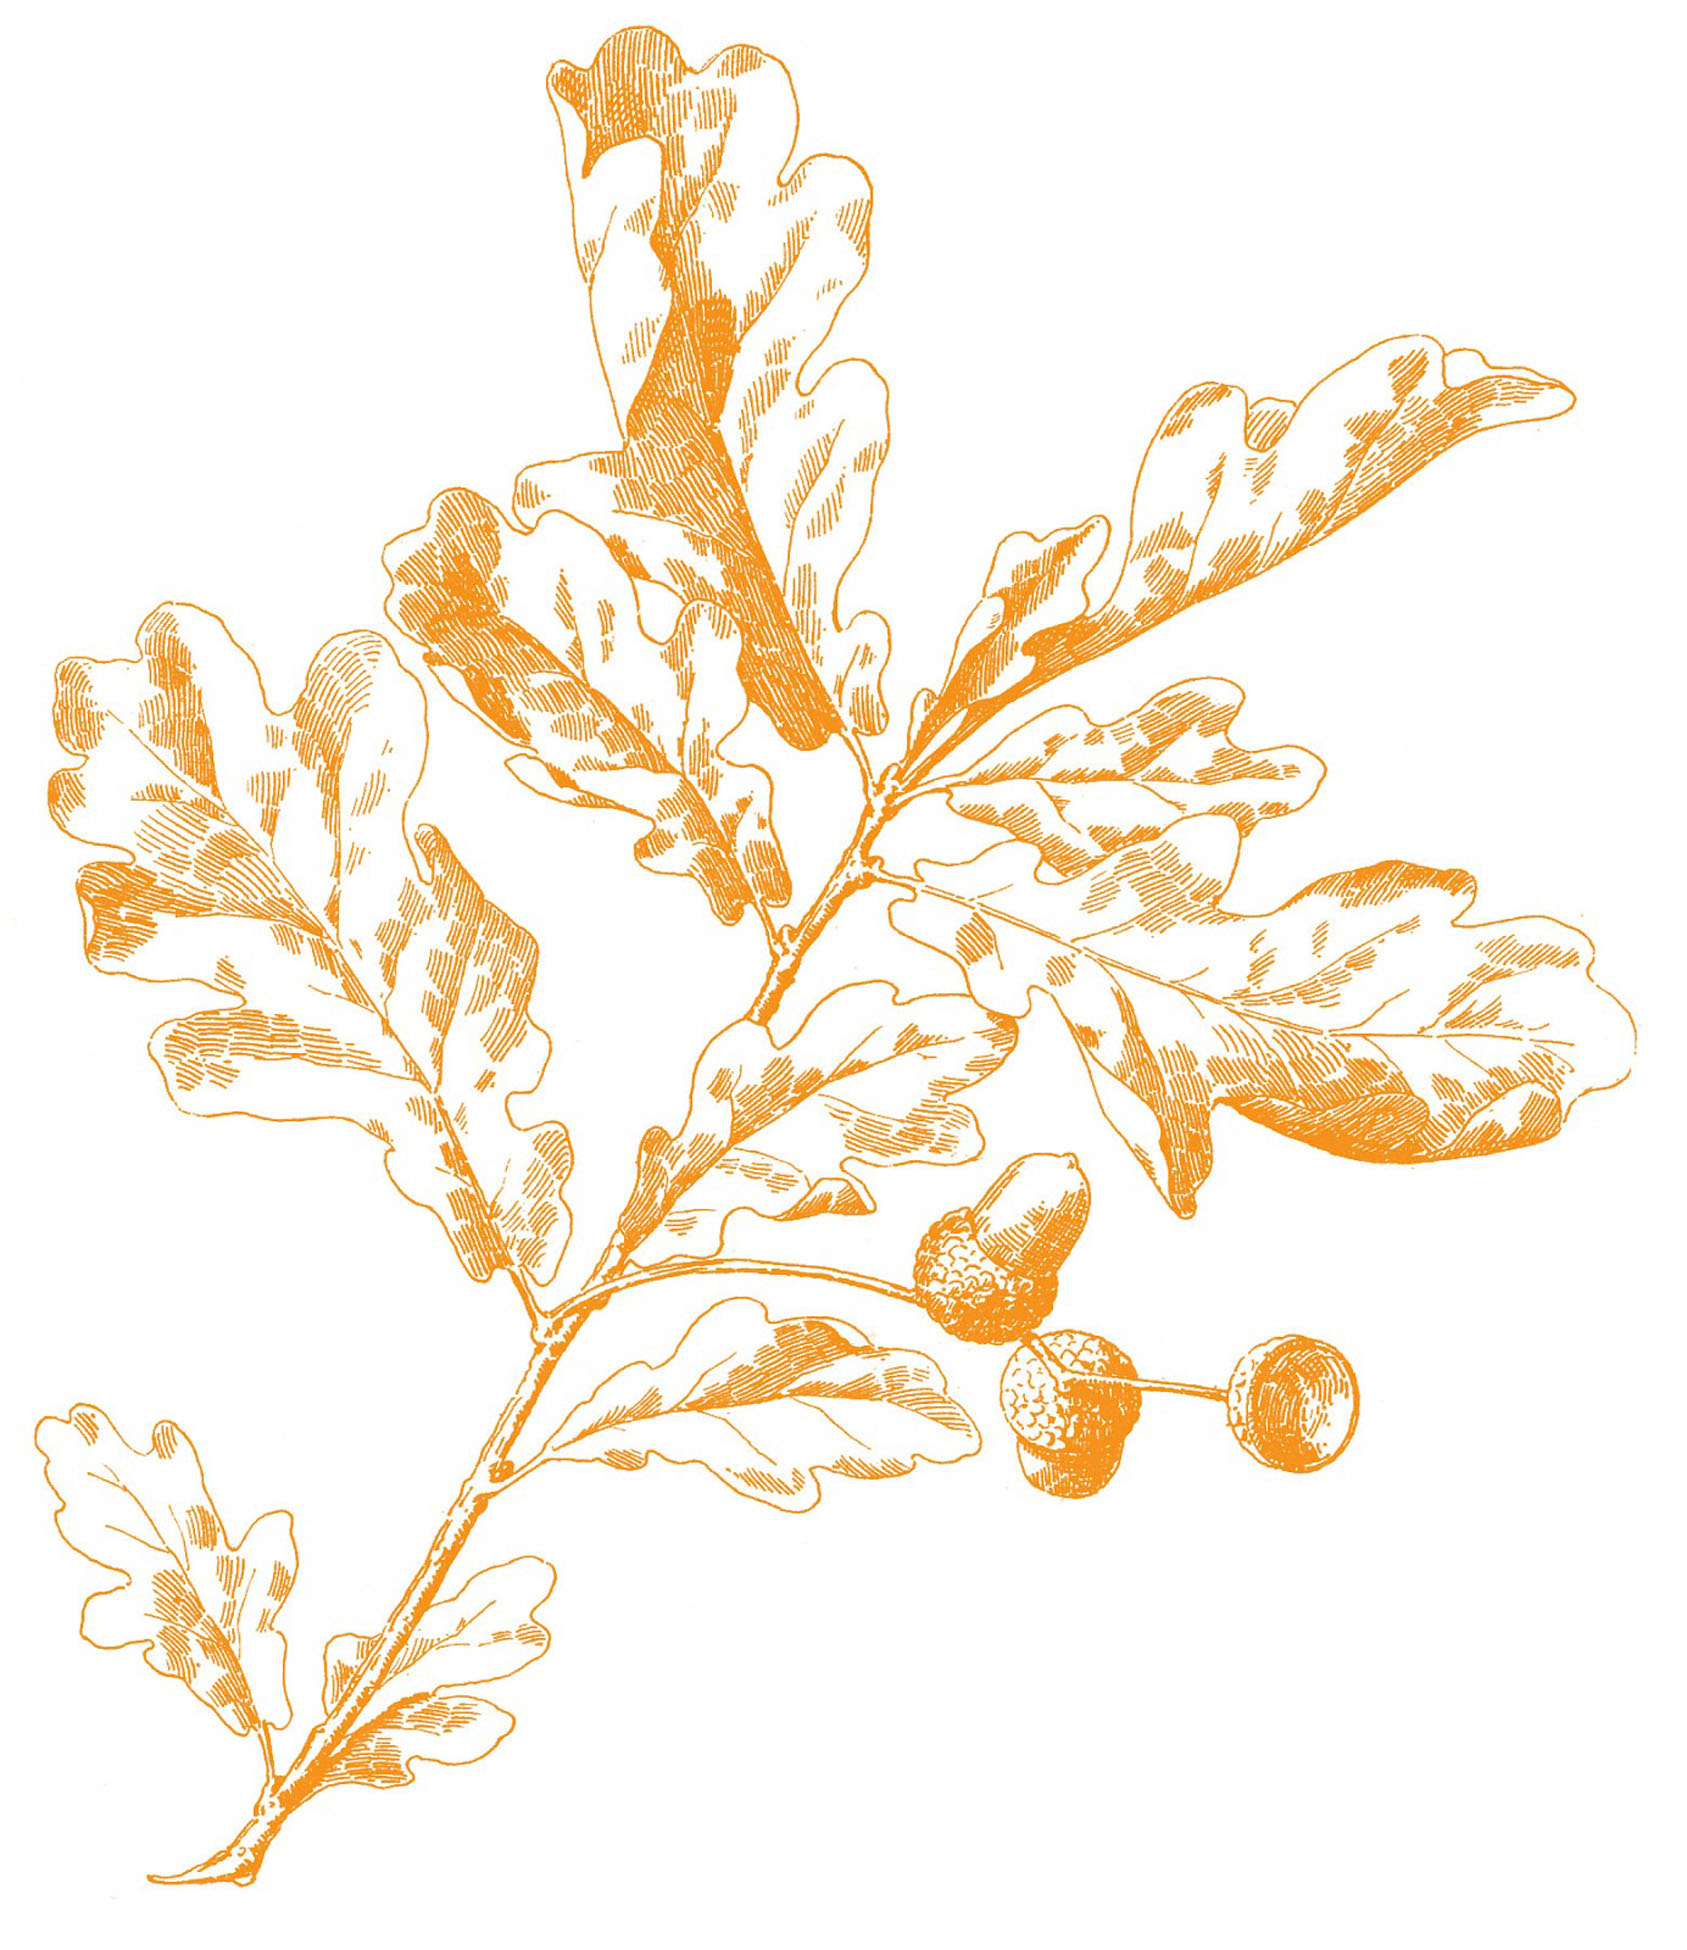 hight resolution of oak leaves image gold here is the gold version